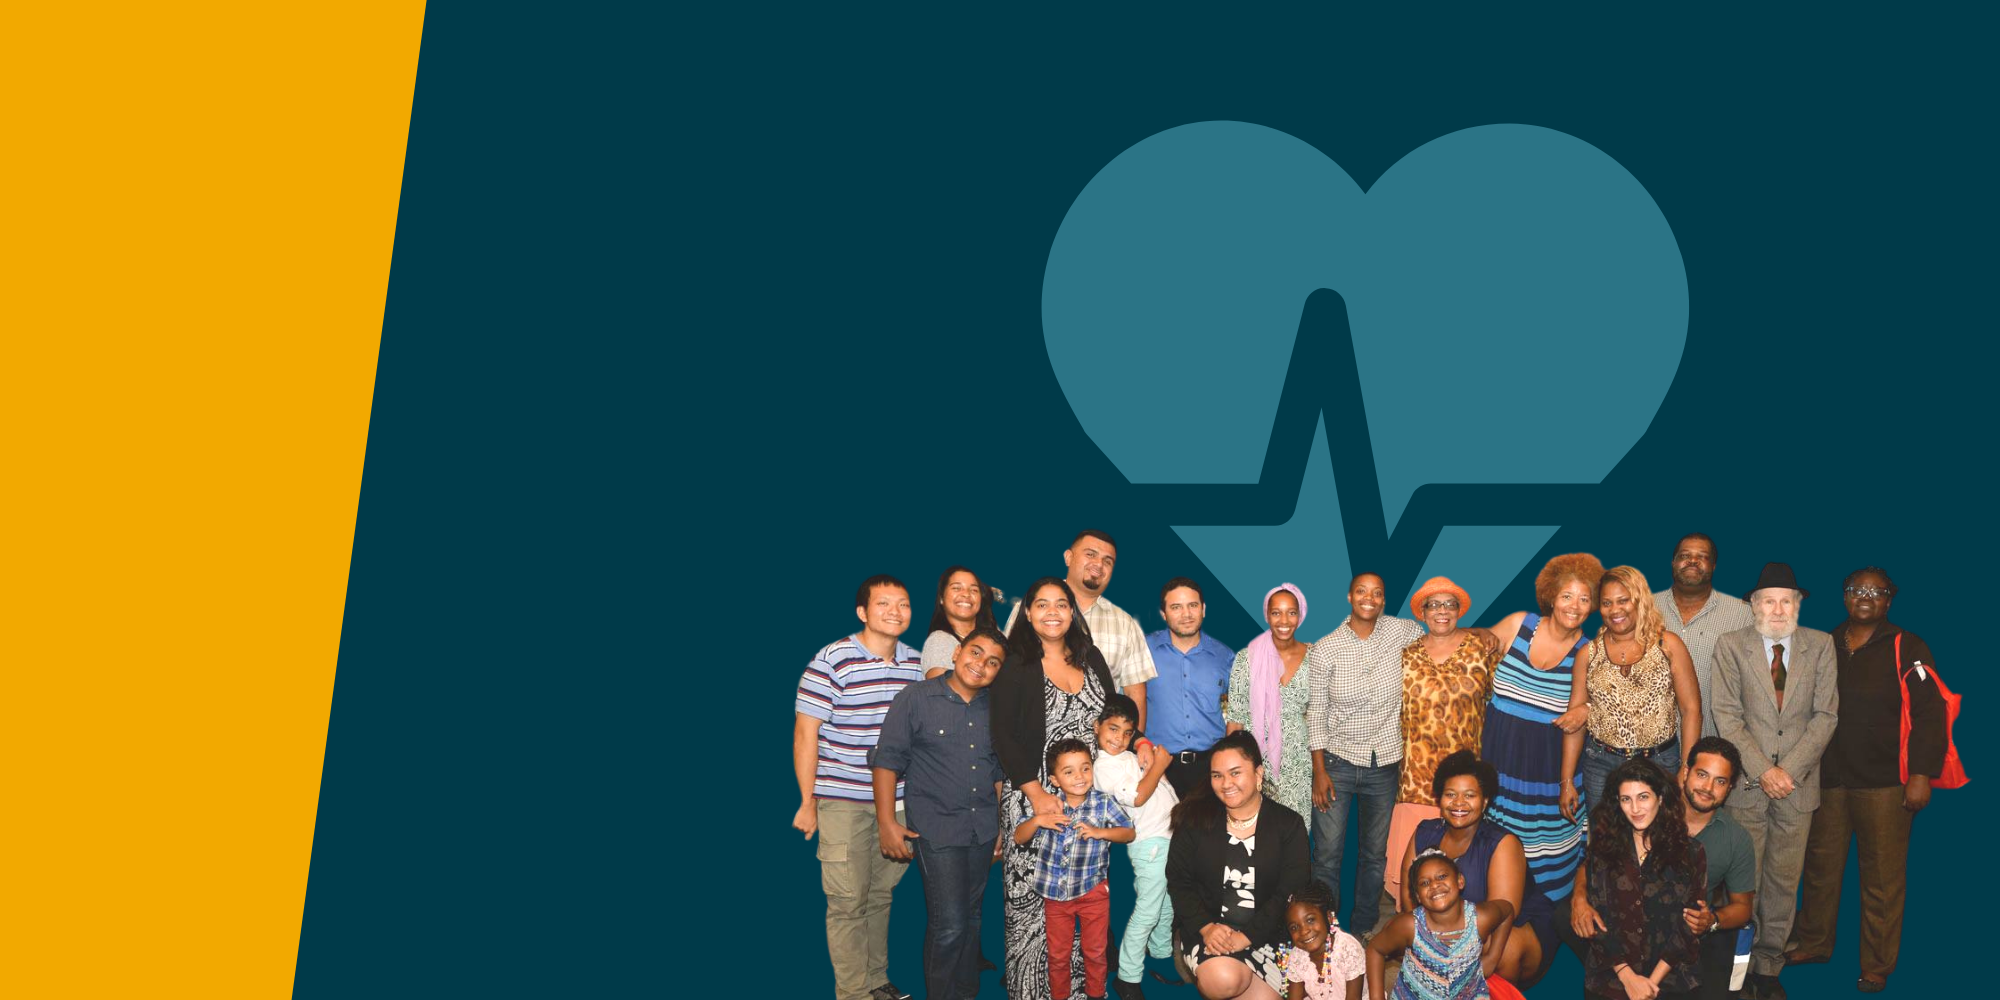 Become a grassroots advocate for health equity